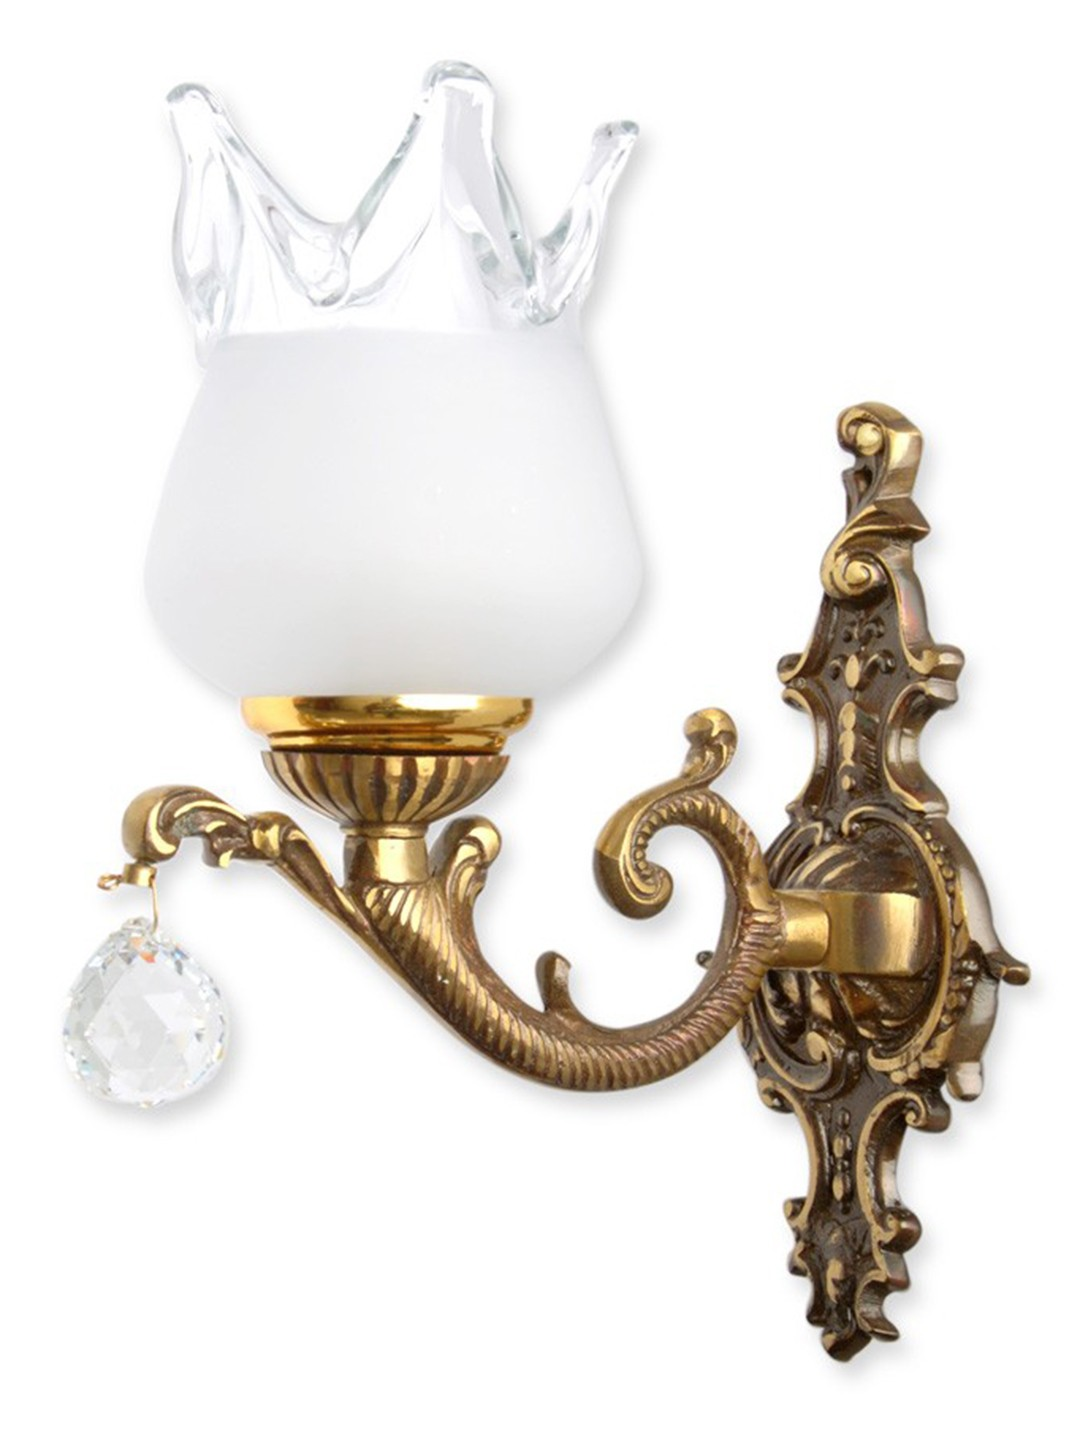 Antique Crystal Ball Single Wall Lamp